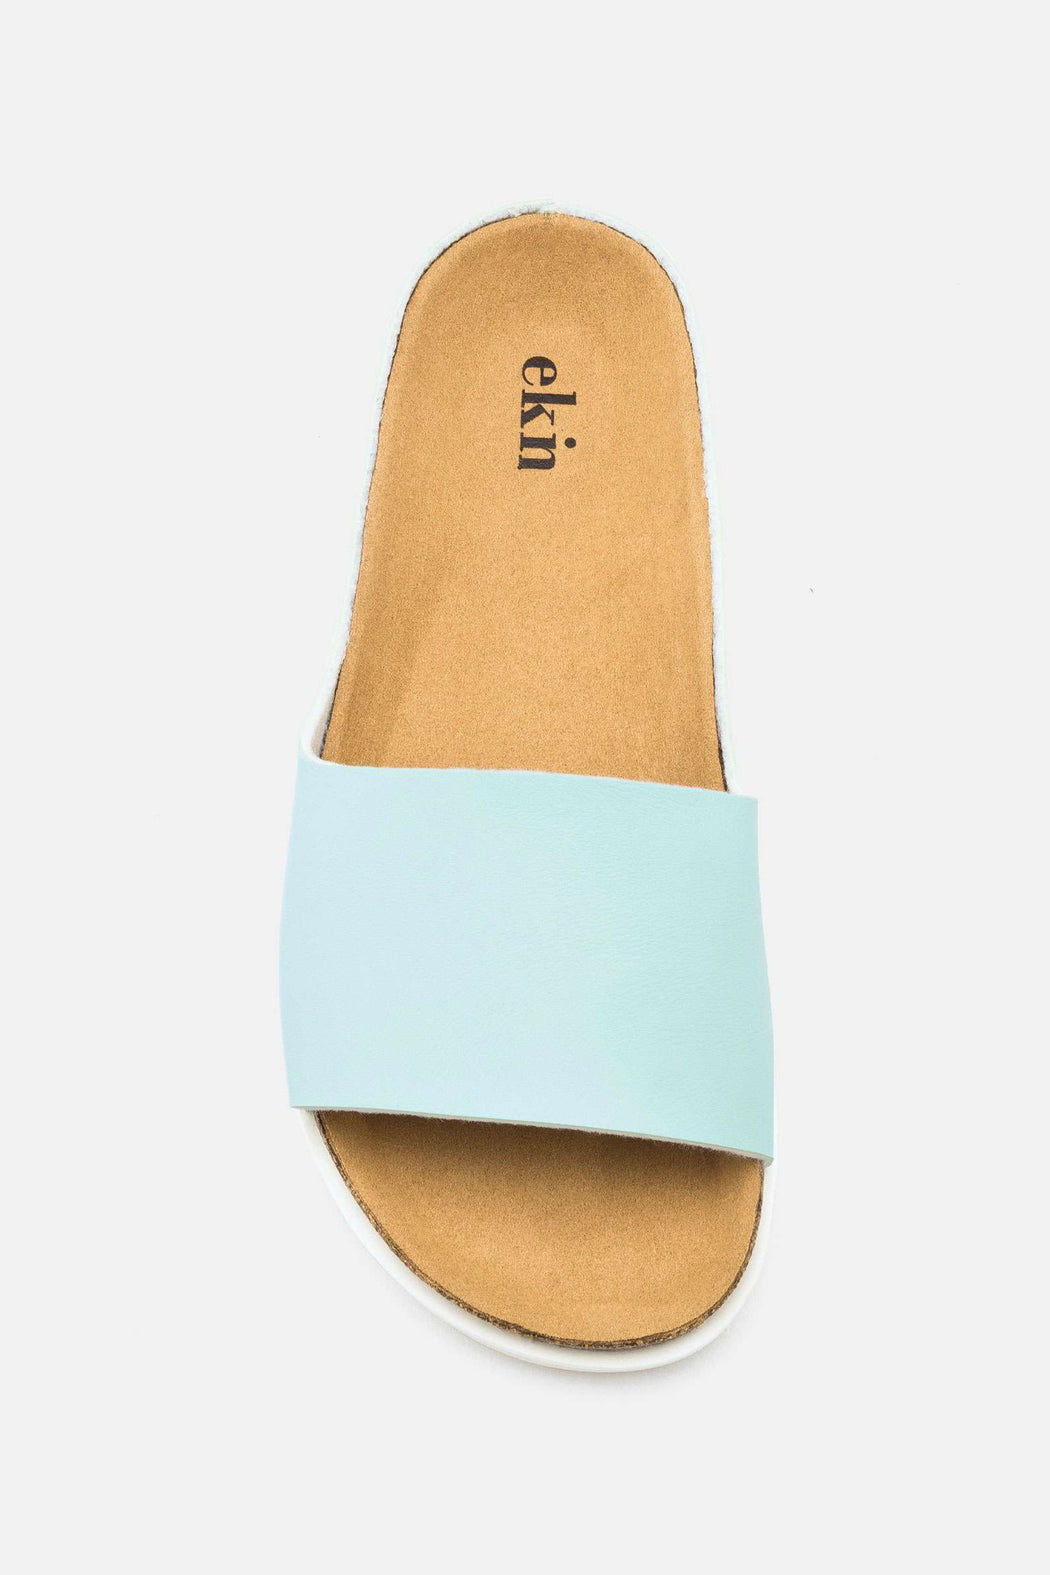 PALM SANDAL mint vegan